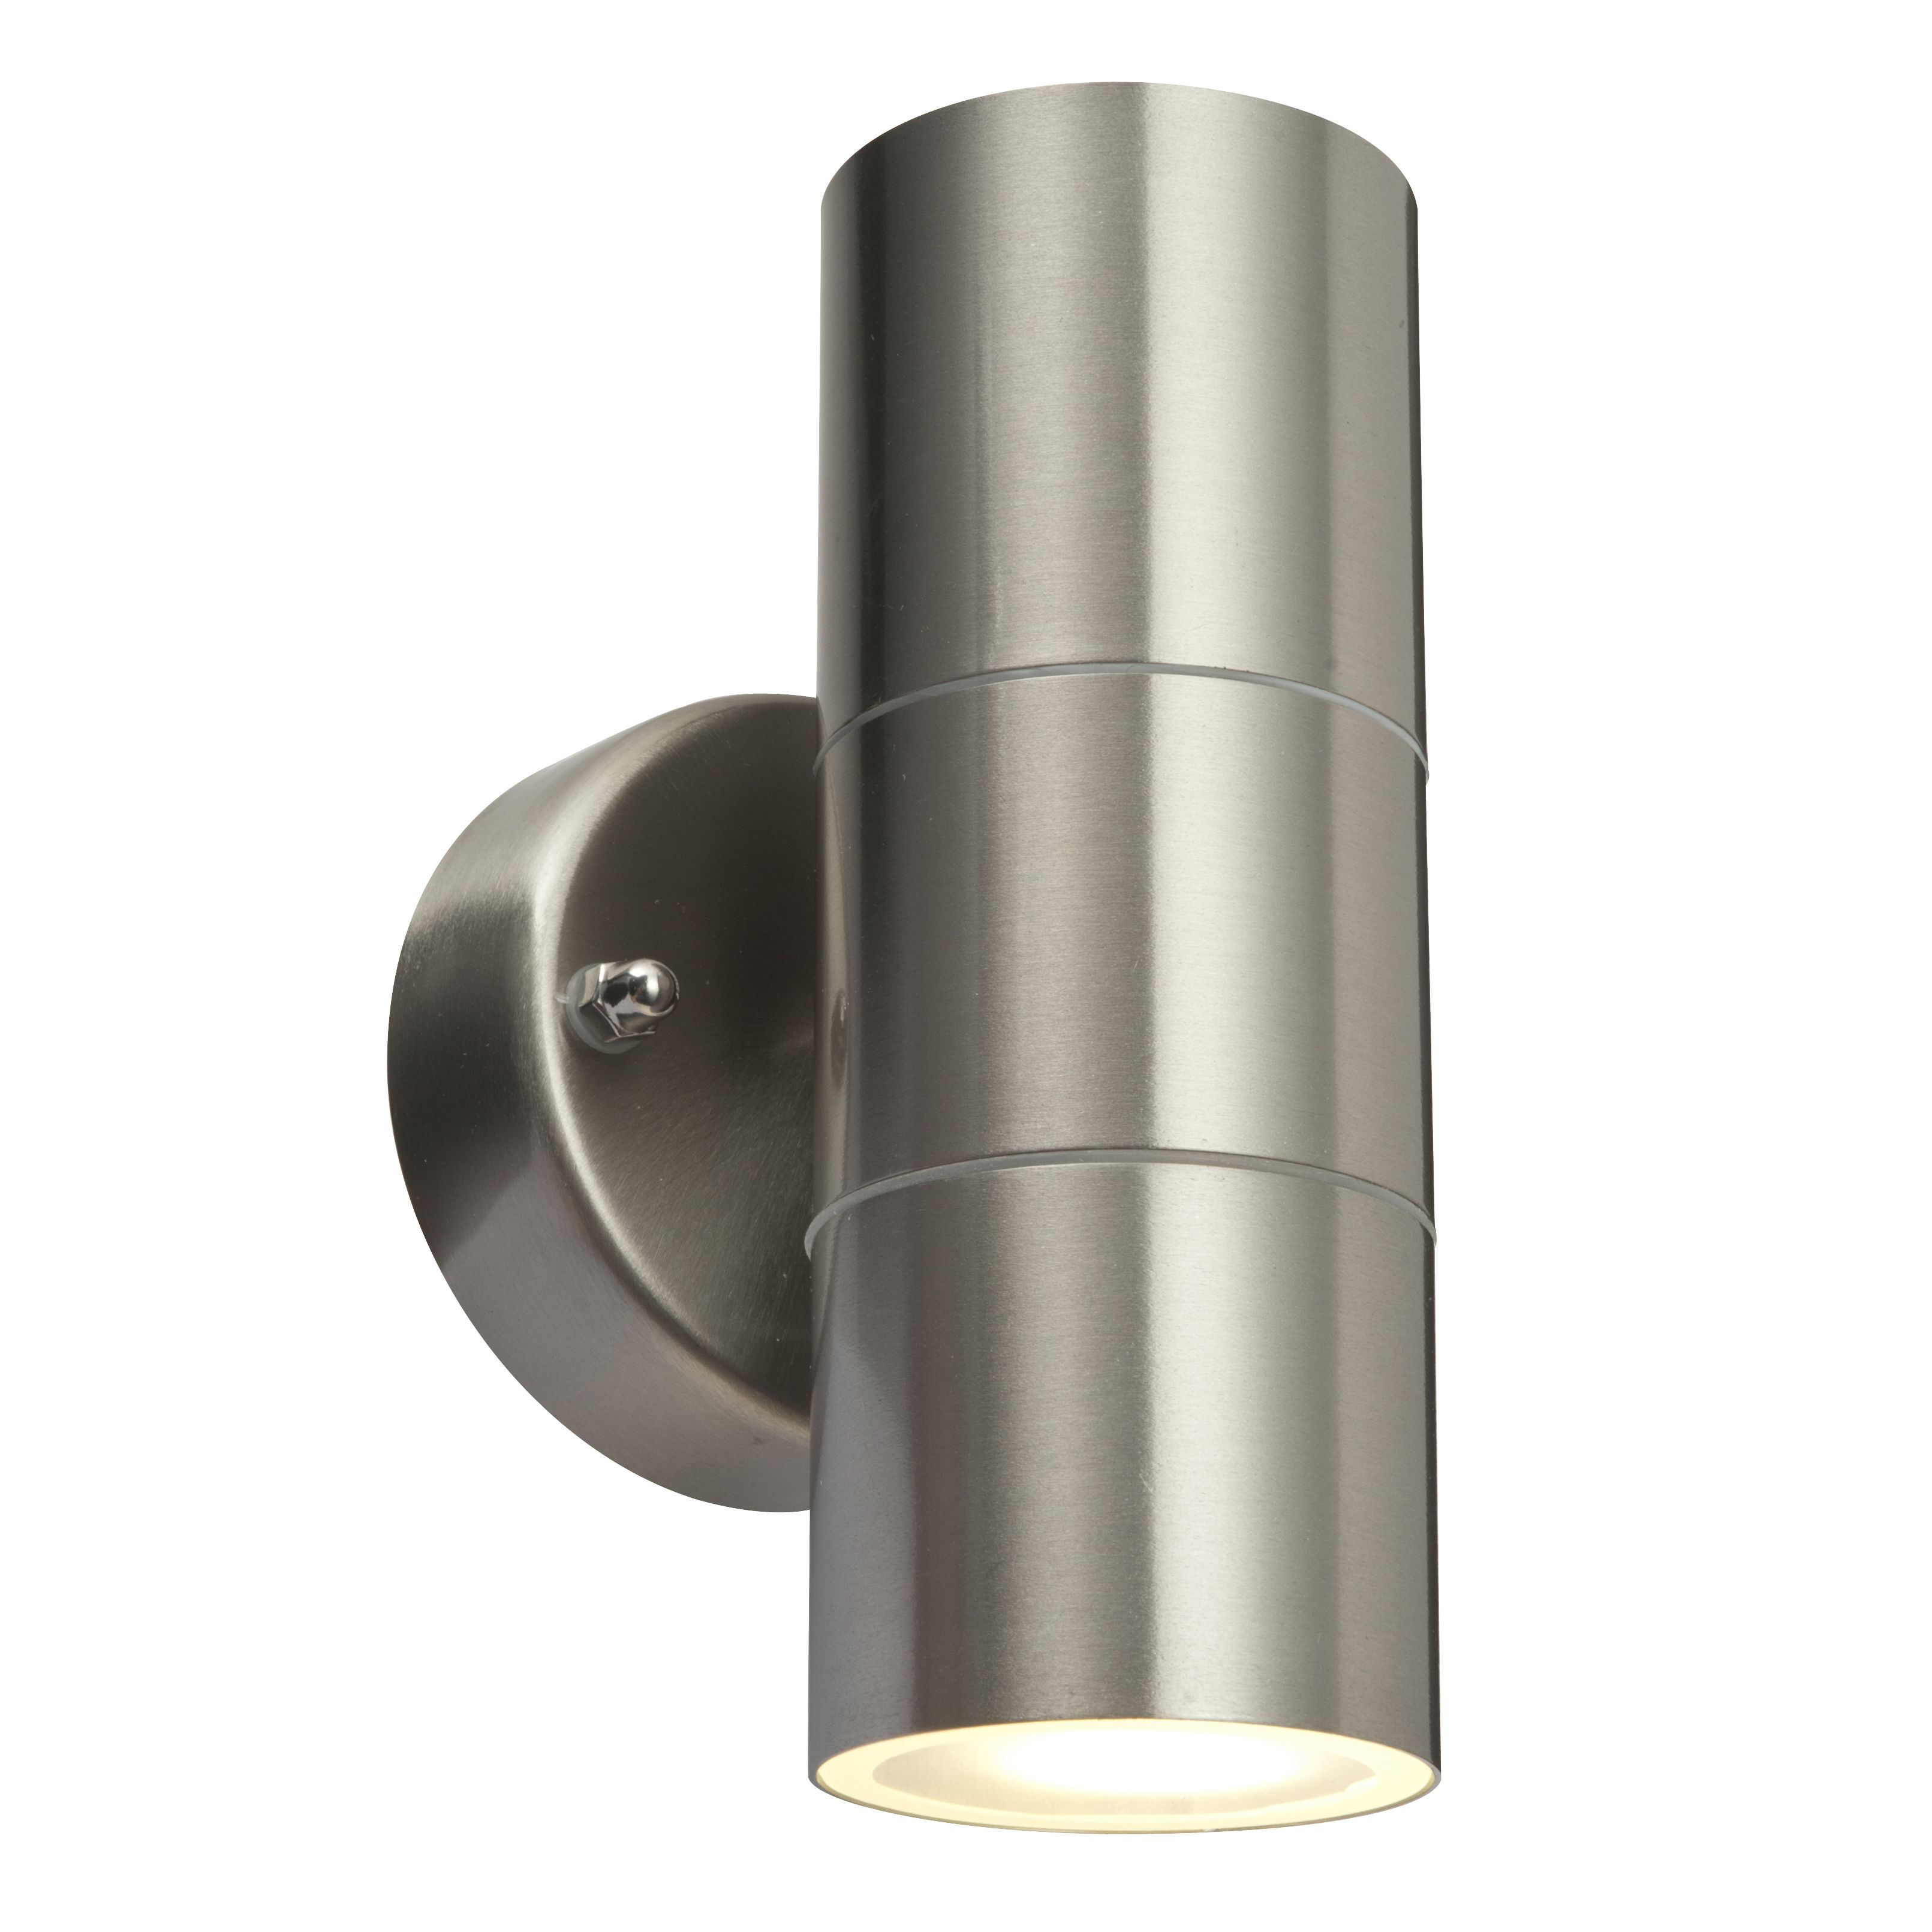 Blooma Sommus Stainless Steel Mains Powered External Up & Down Wall Light